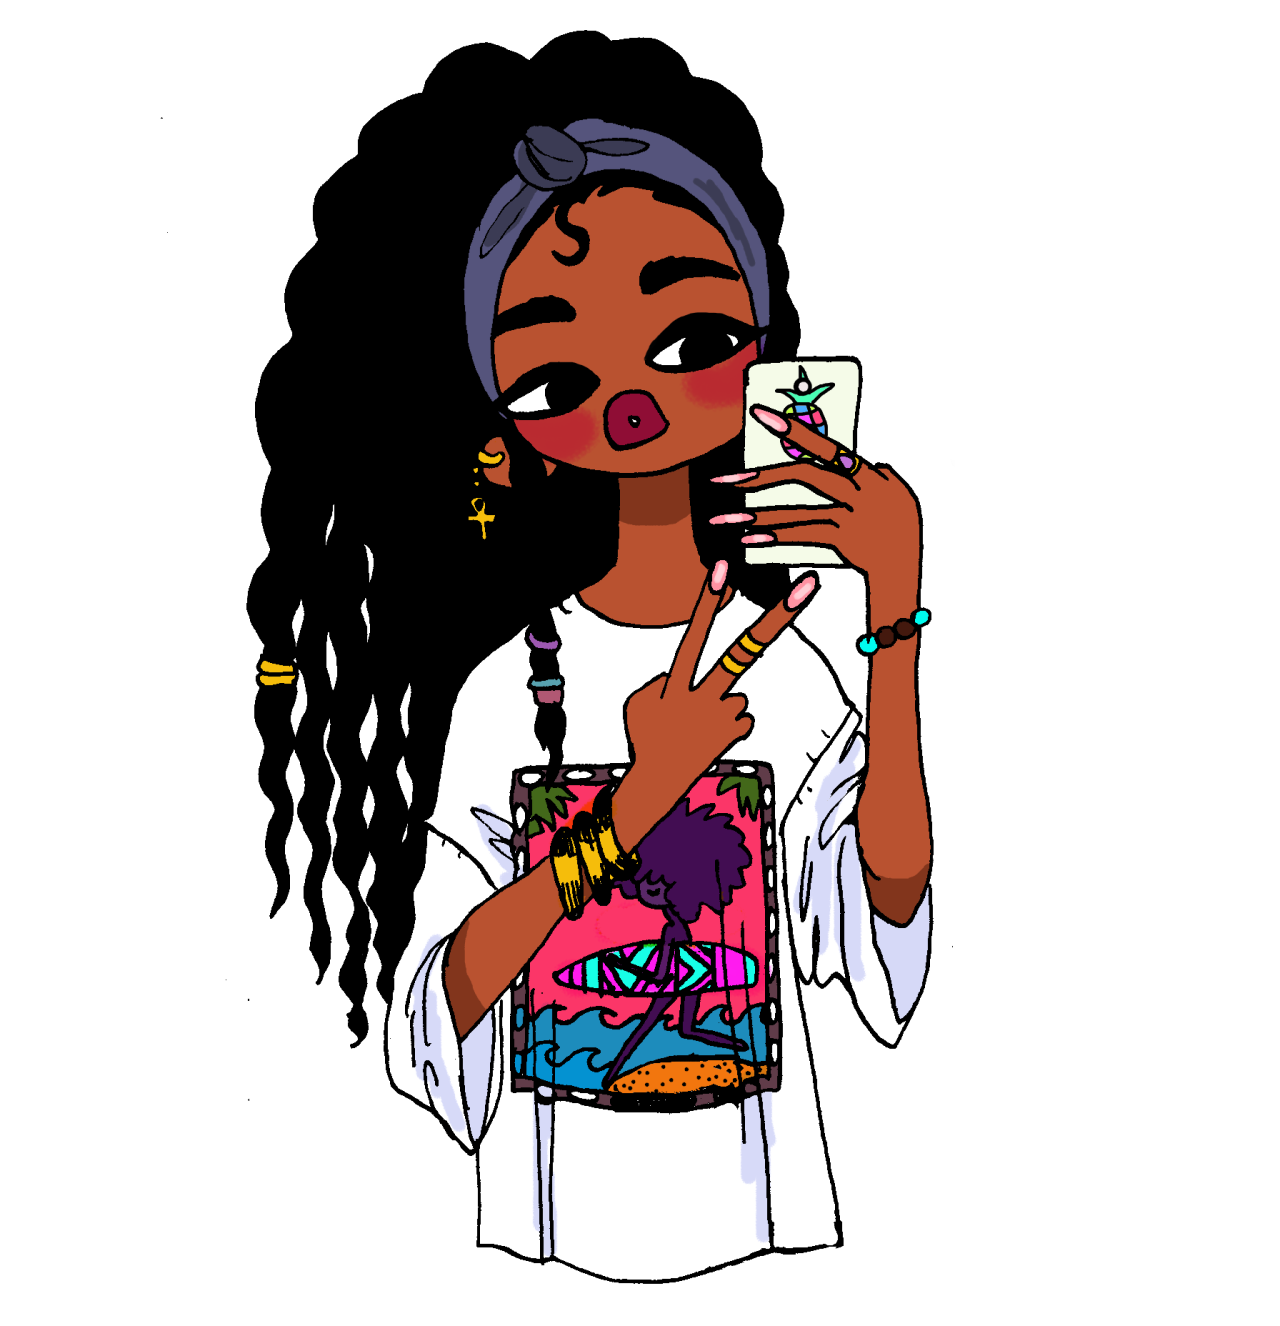 Pin by TheHeartShow on ARRRRRRRRT | Art, Black girl ...